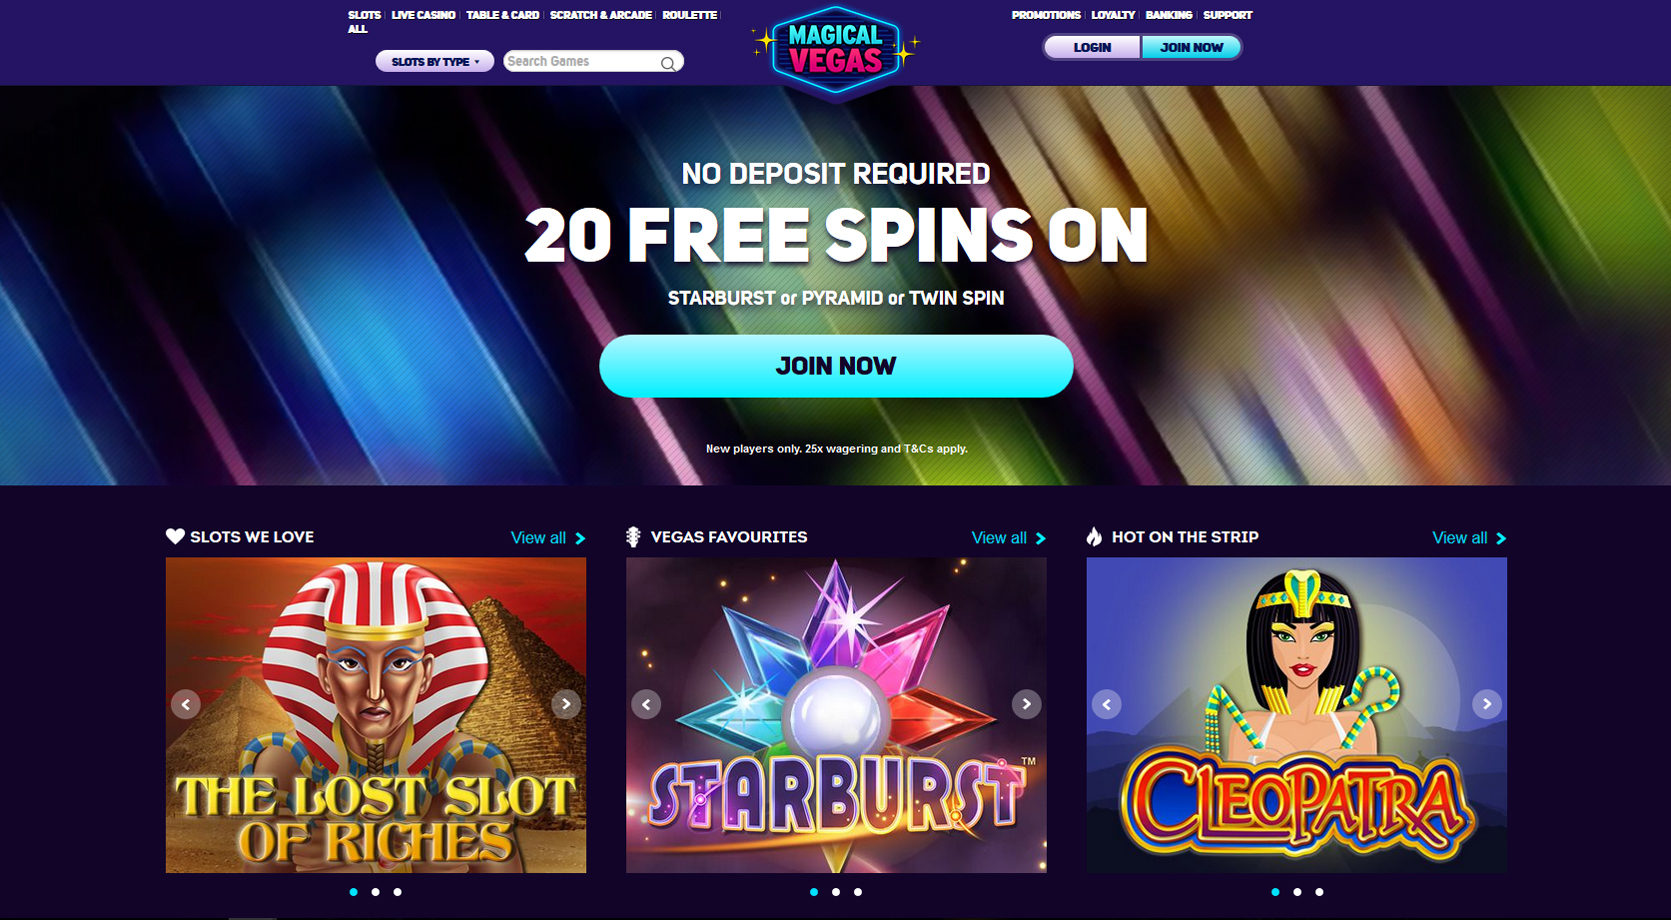 Magical vegas 20 free spins